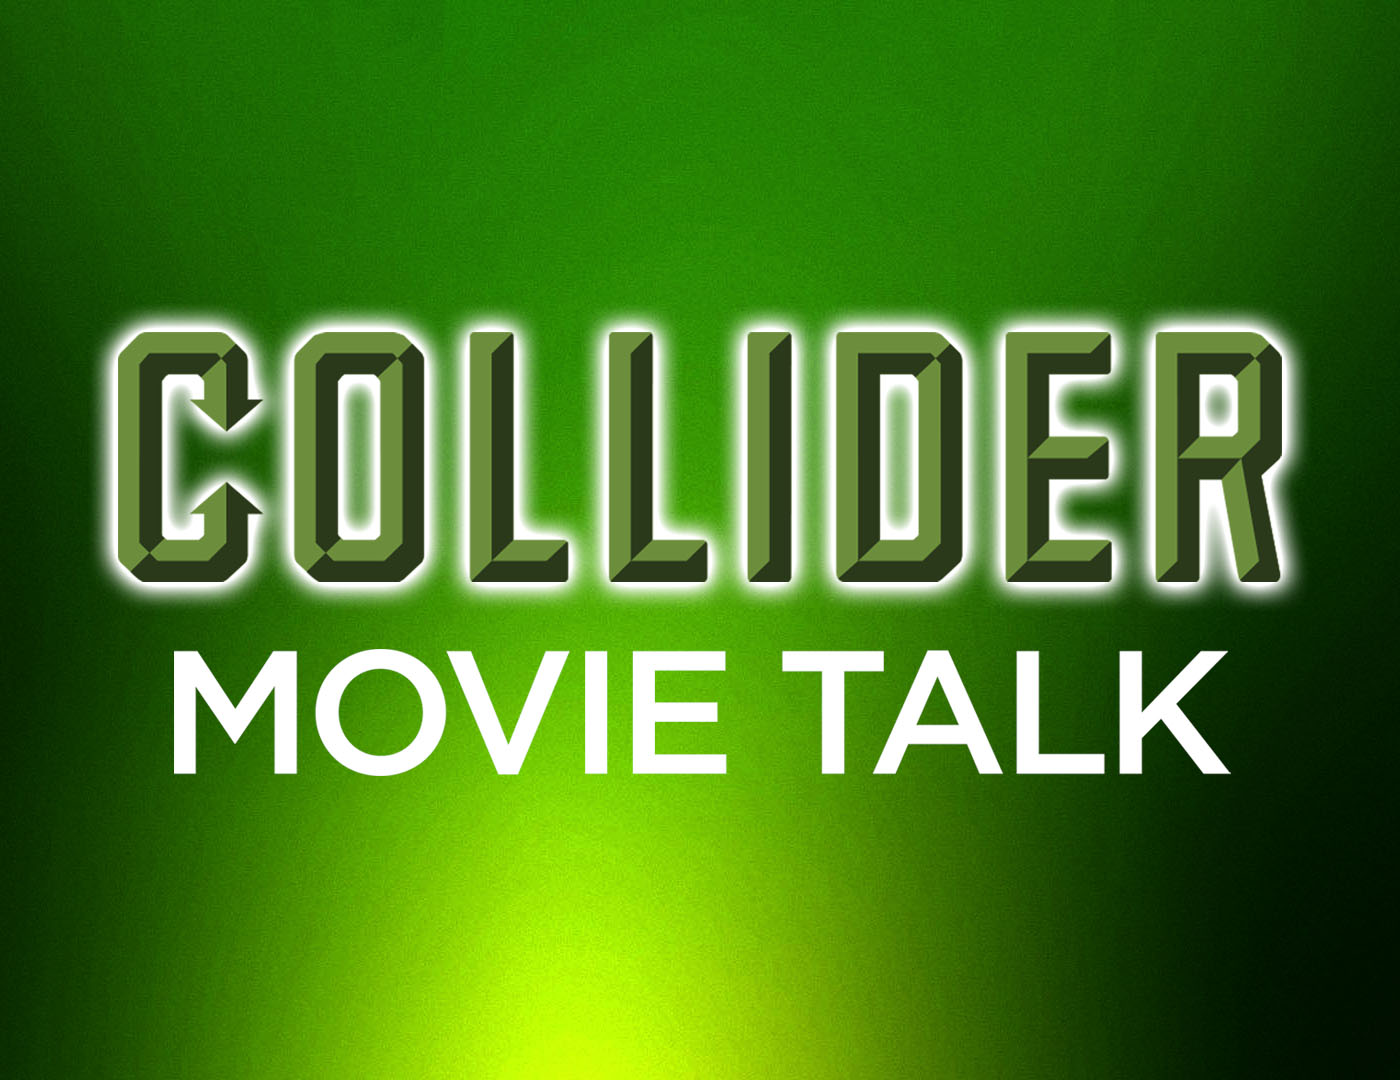 Joker Is Jason Todd Fan Theory Debunked By Suicide Squad Director - Collider Movie Talk